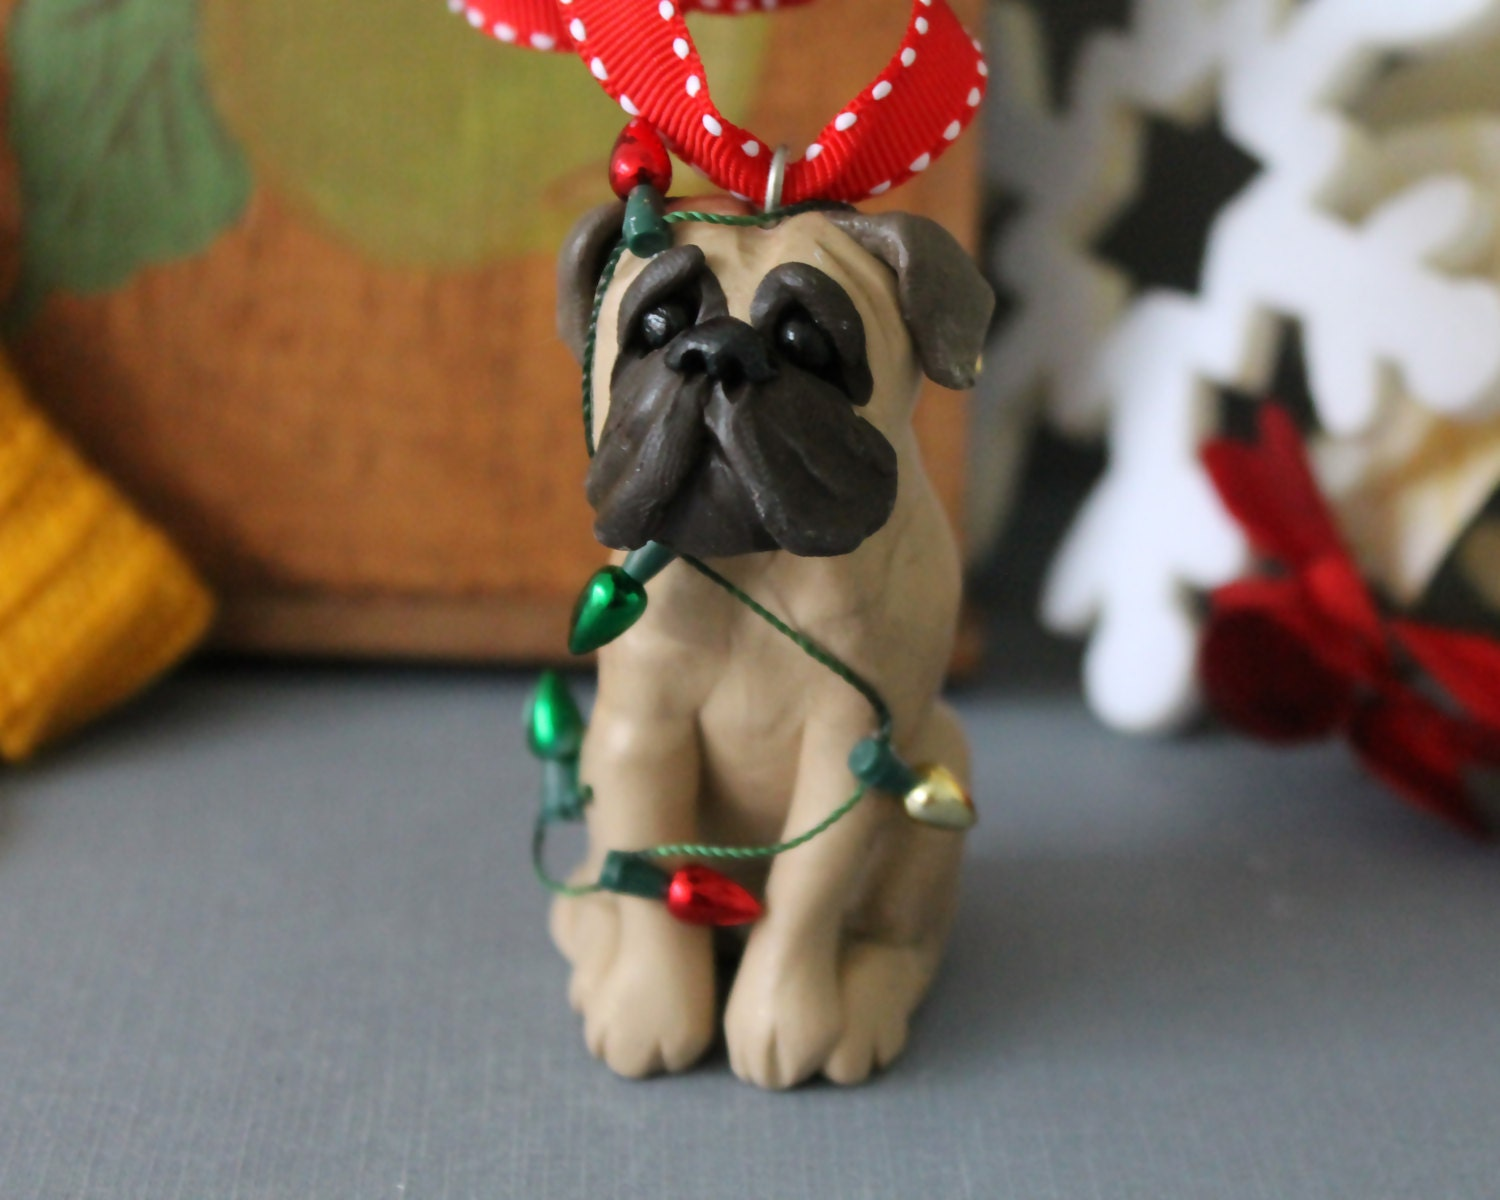 Bullmastiff Christmas Ornament - READY TO SHIP - Bull mastiff Tangled in Lights - CherryRedToppers